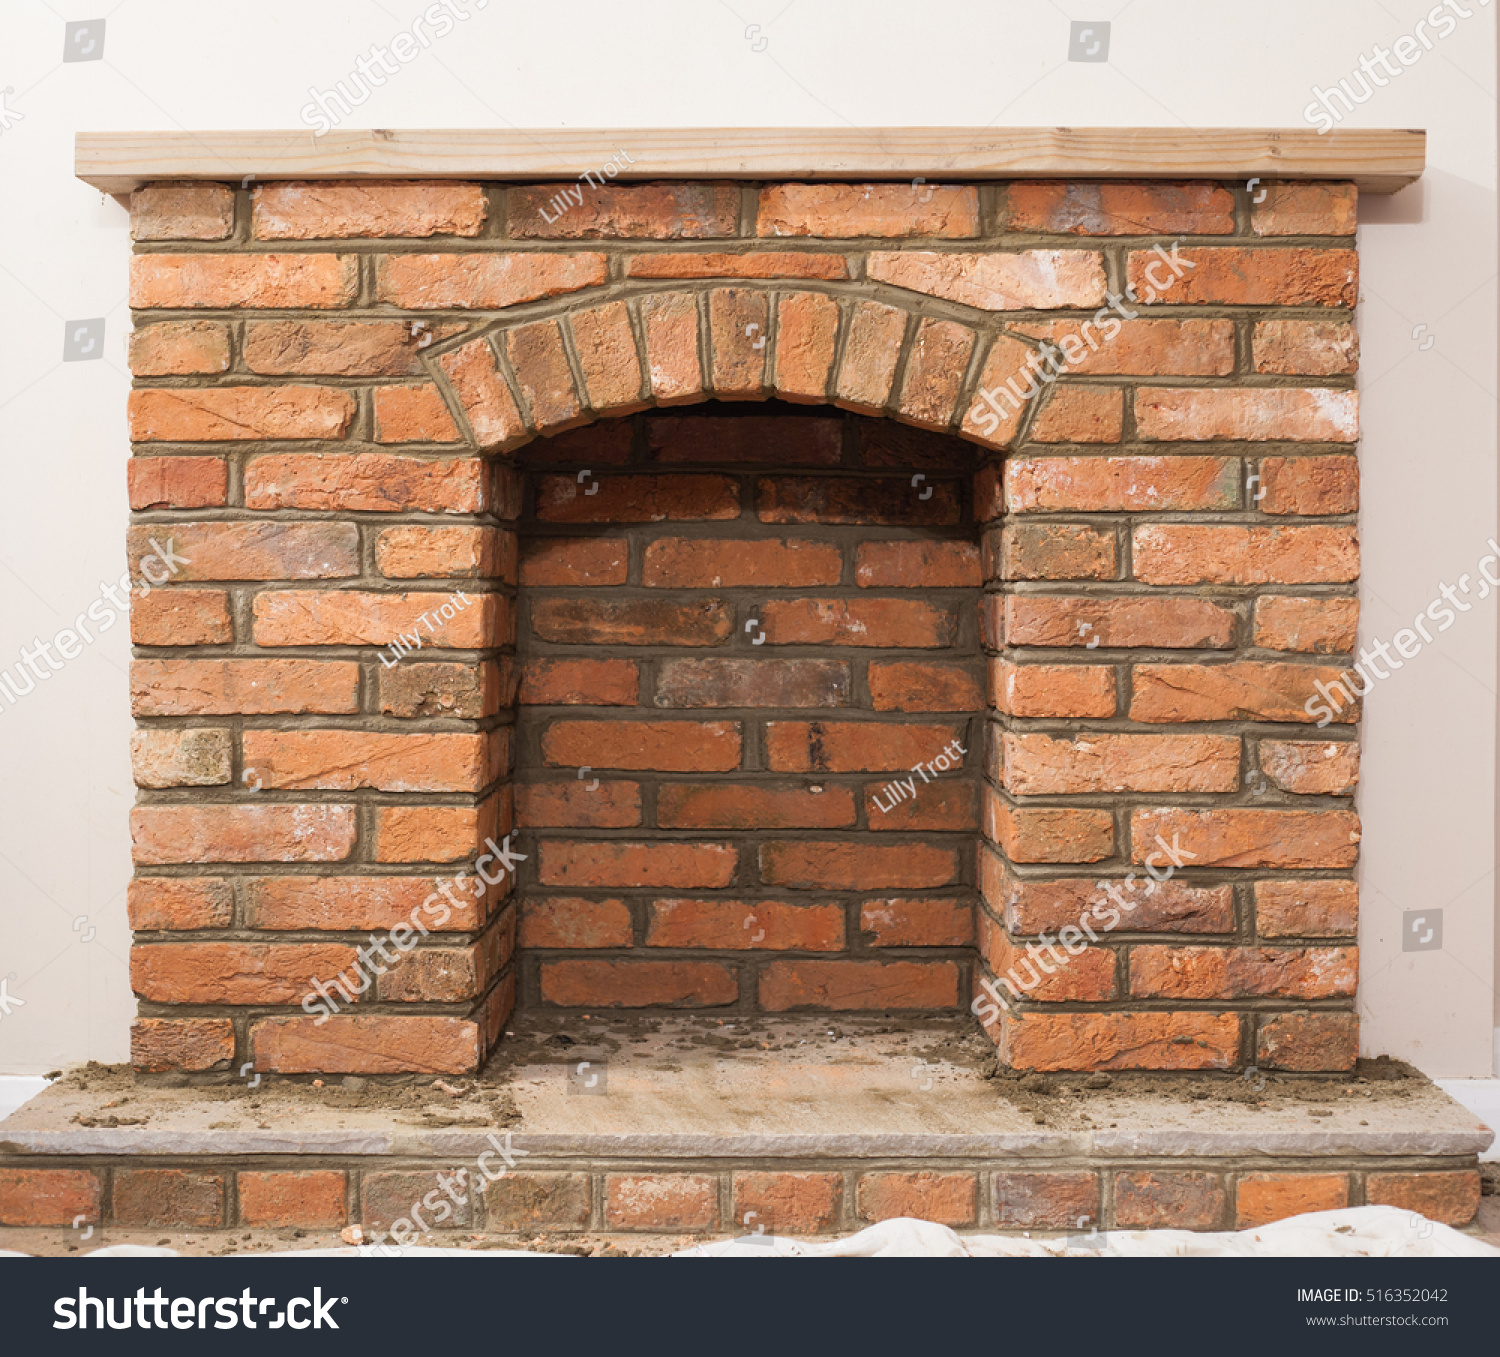 indoor diy project building fireplace house stock photo 516352042